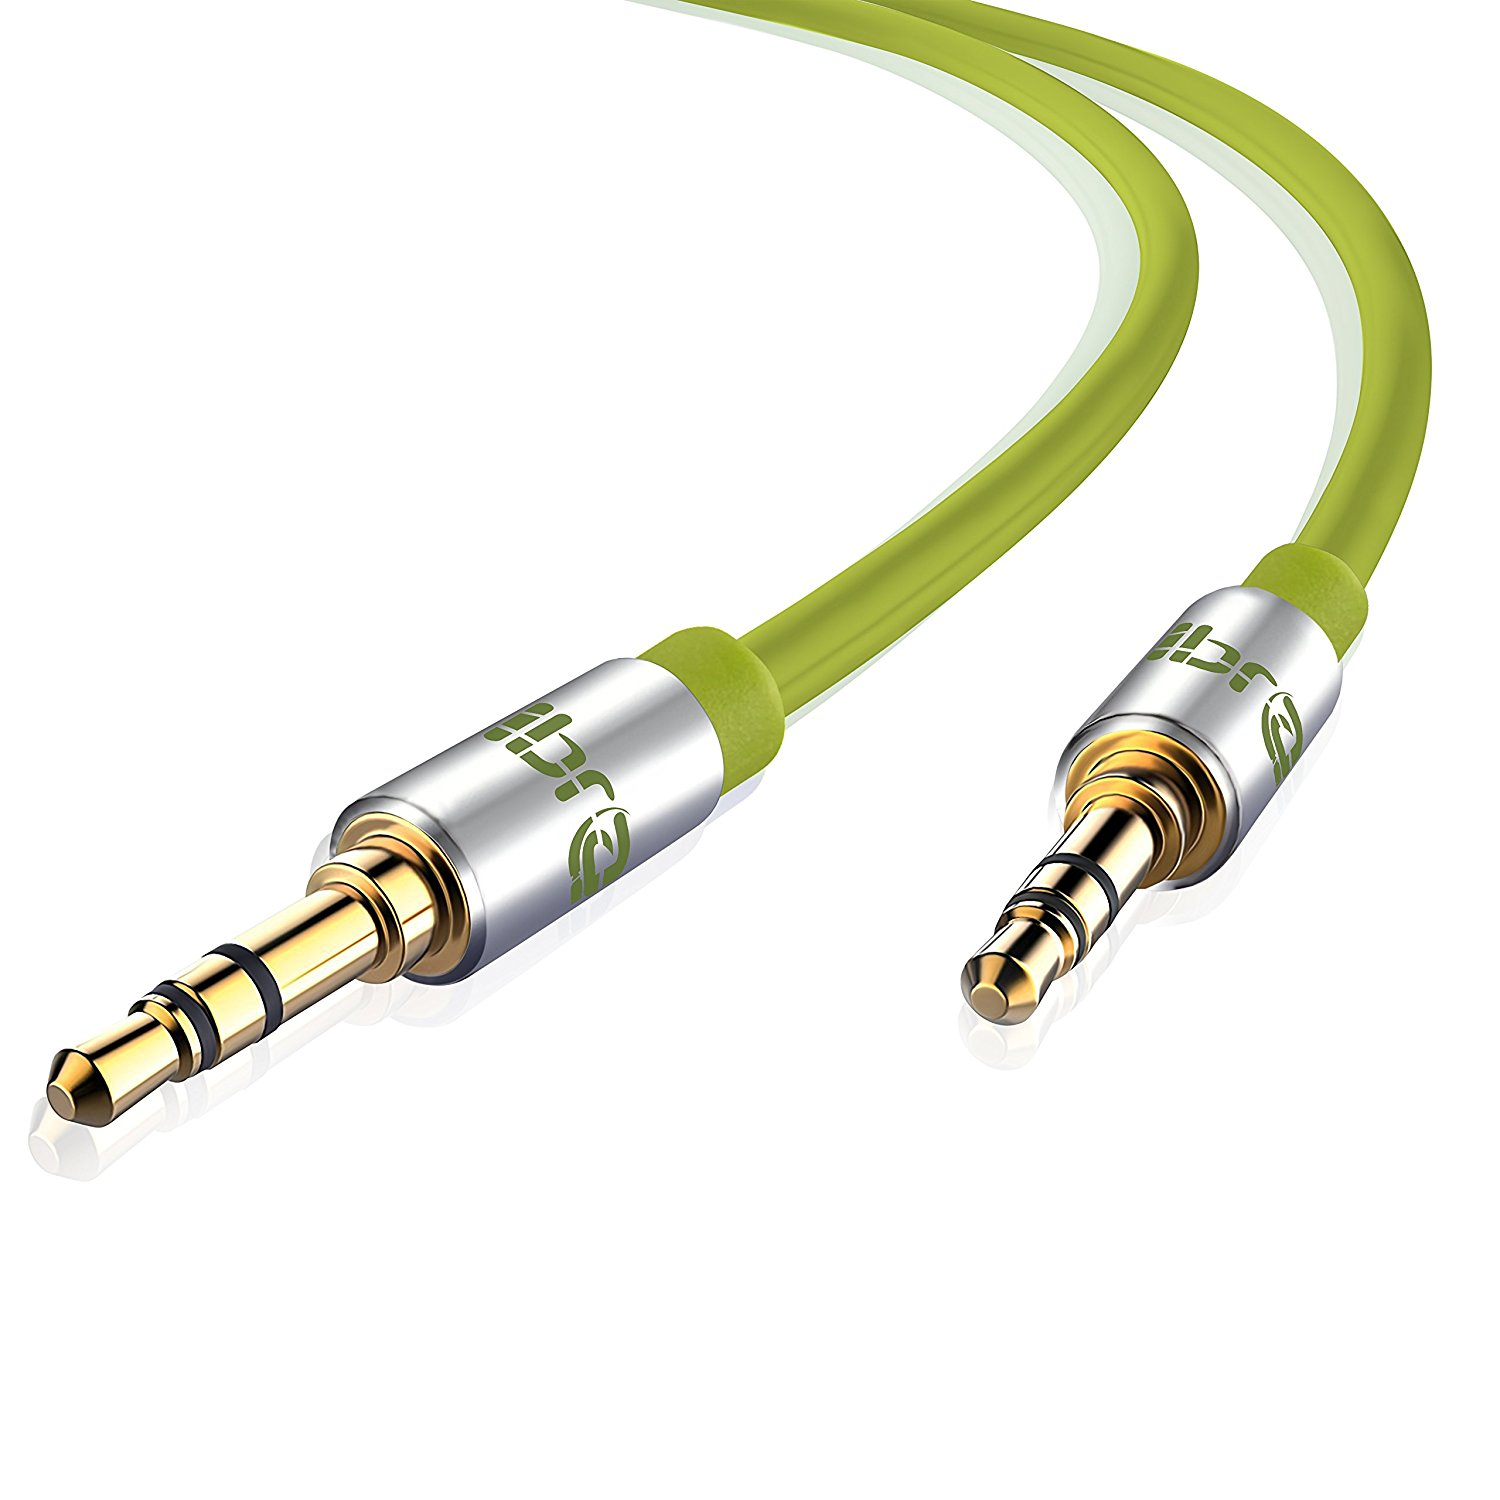 Aux Cable 10M 3.5mm Stereo Pro Auxiliary Audio Cable - for Beats Headphones Apple iPod iPhone iPad Samsung LG Smartphone MP3 Player Home / Car etc - IBRA Green